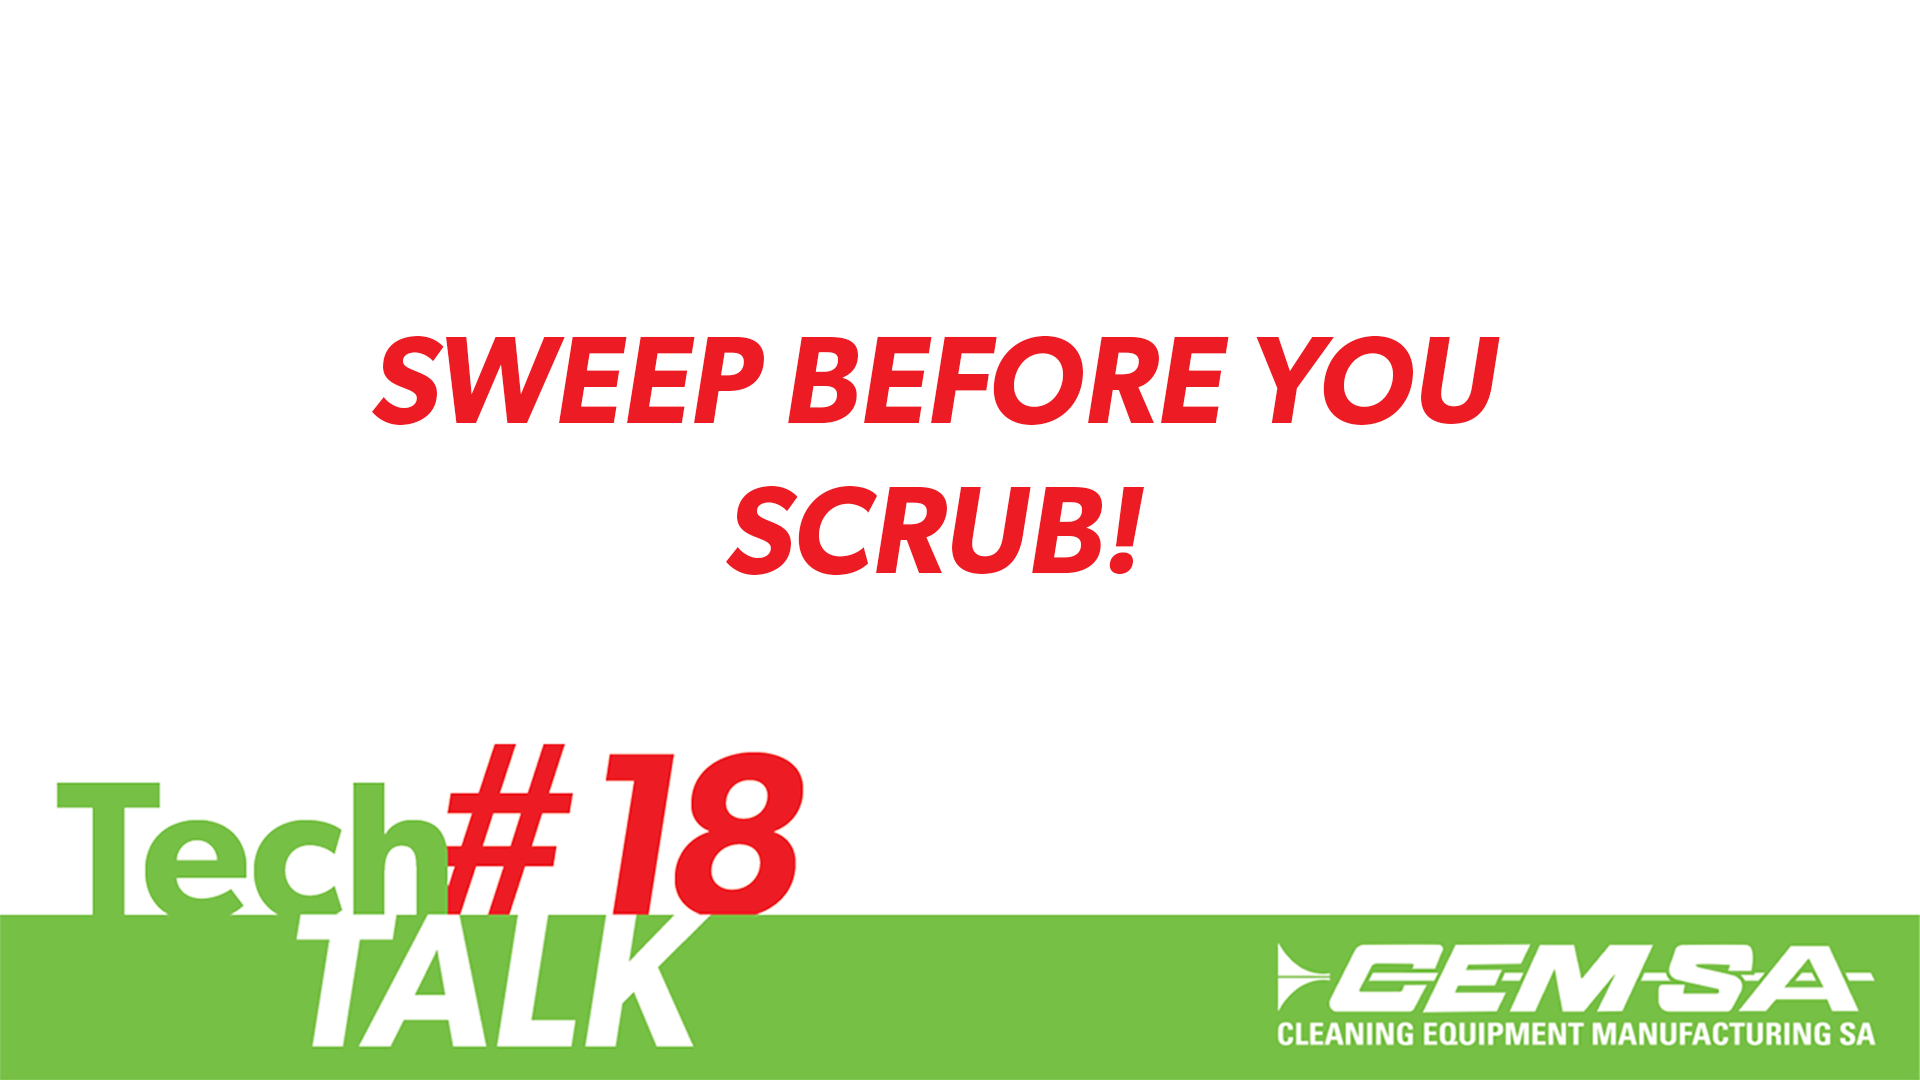 TechTalk #18- Sweep Before You Scrub!